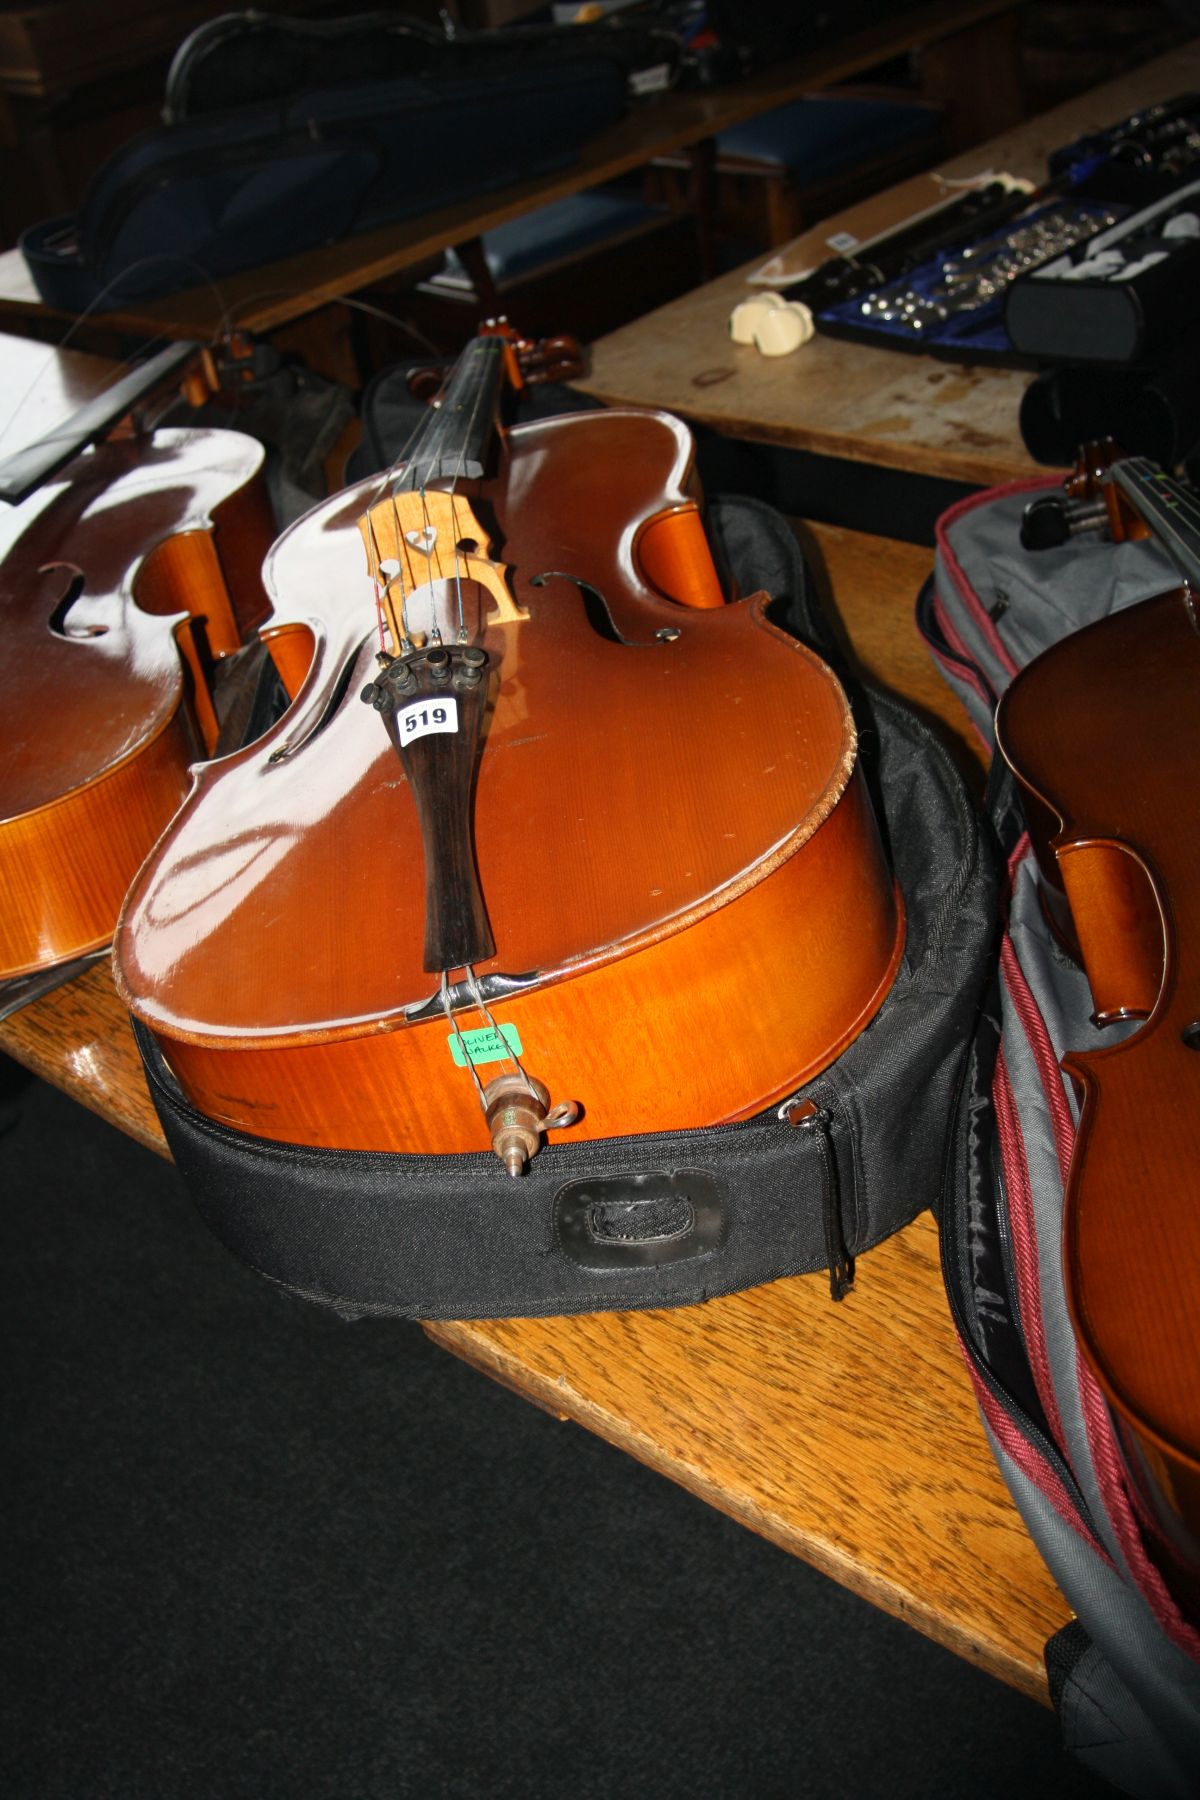 Lot 519 - A MICHAEL POLLER 3/4 SIZE CELLO, with bow and padded case